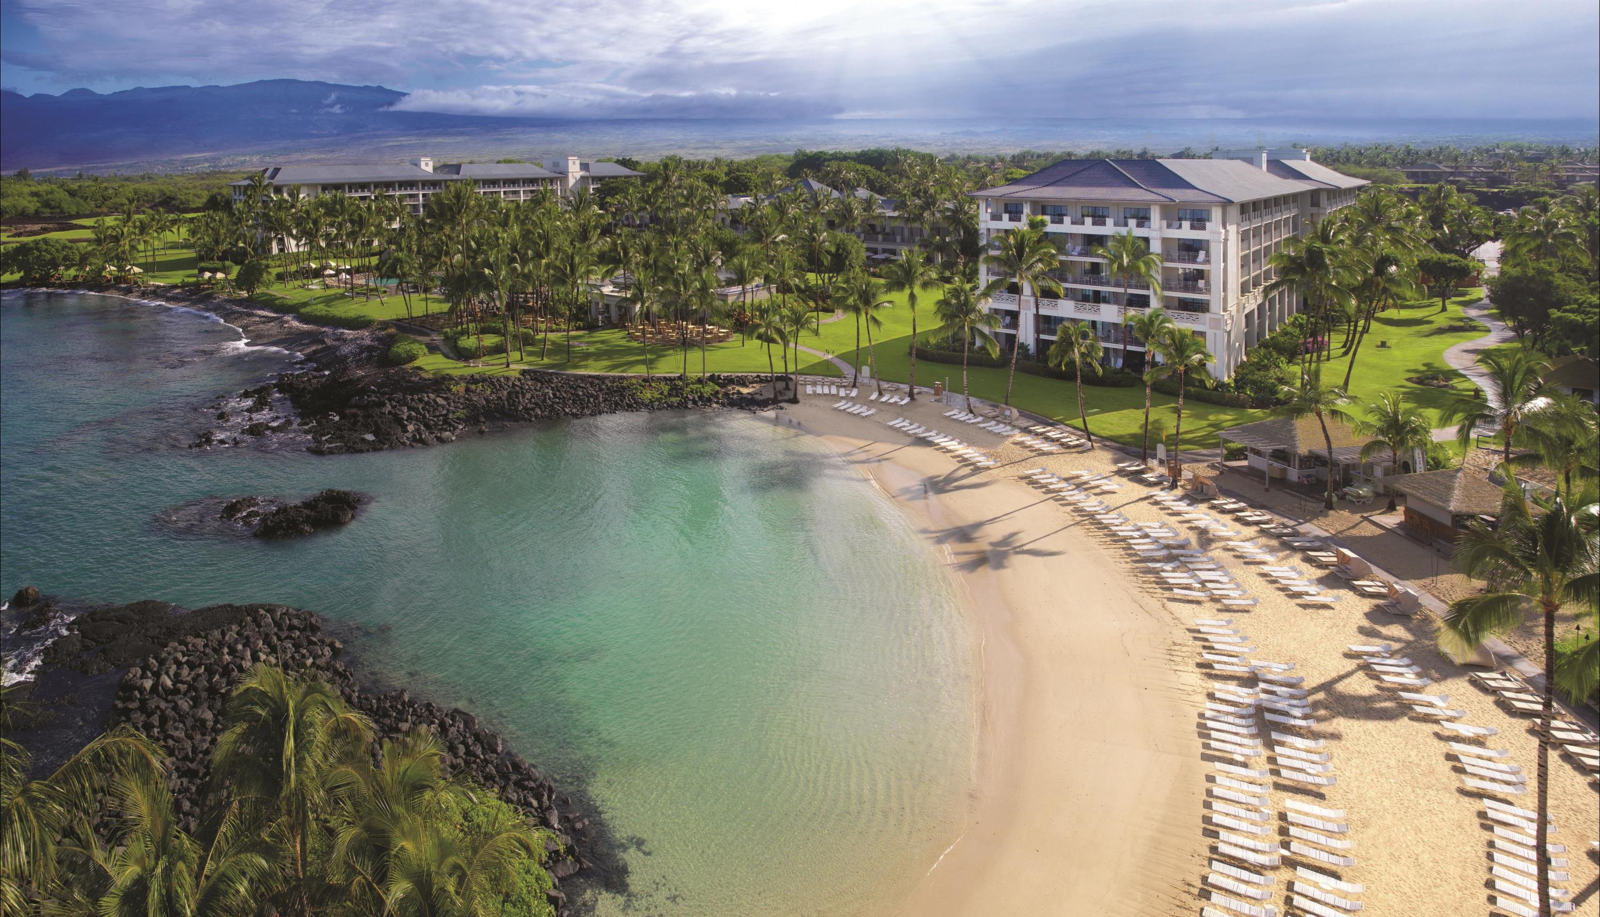 HAWAII HEART - Echocardiography and Multimodality Imaging